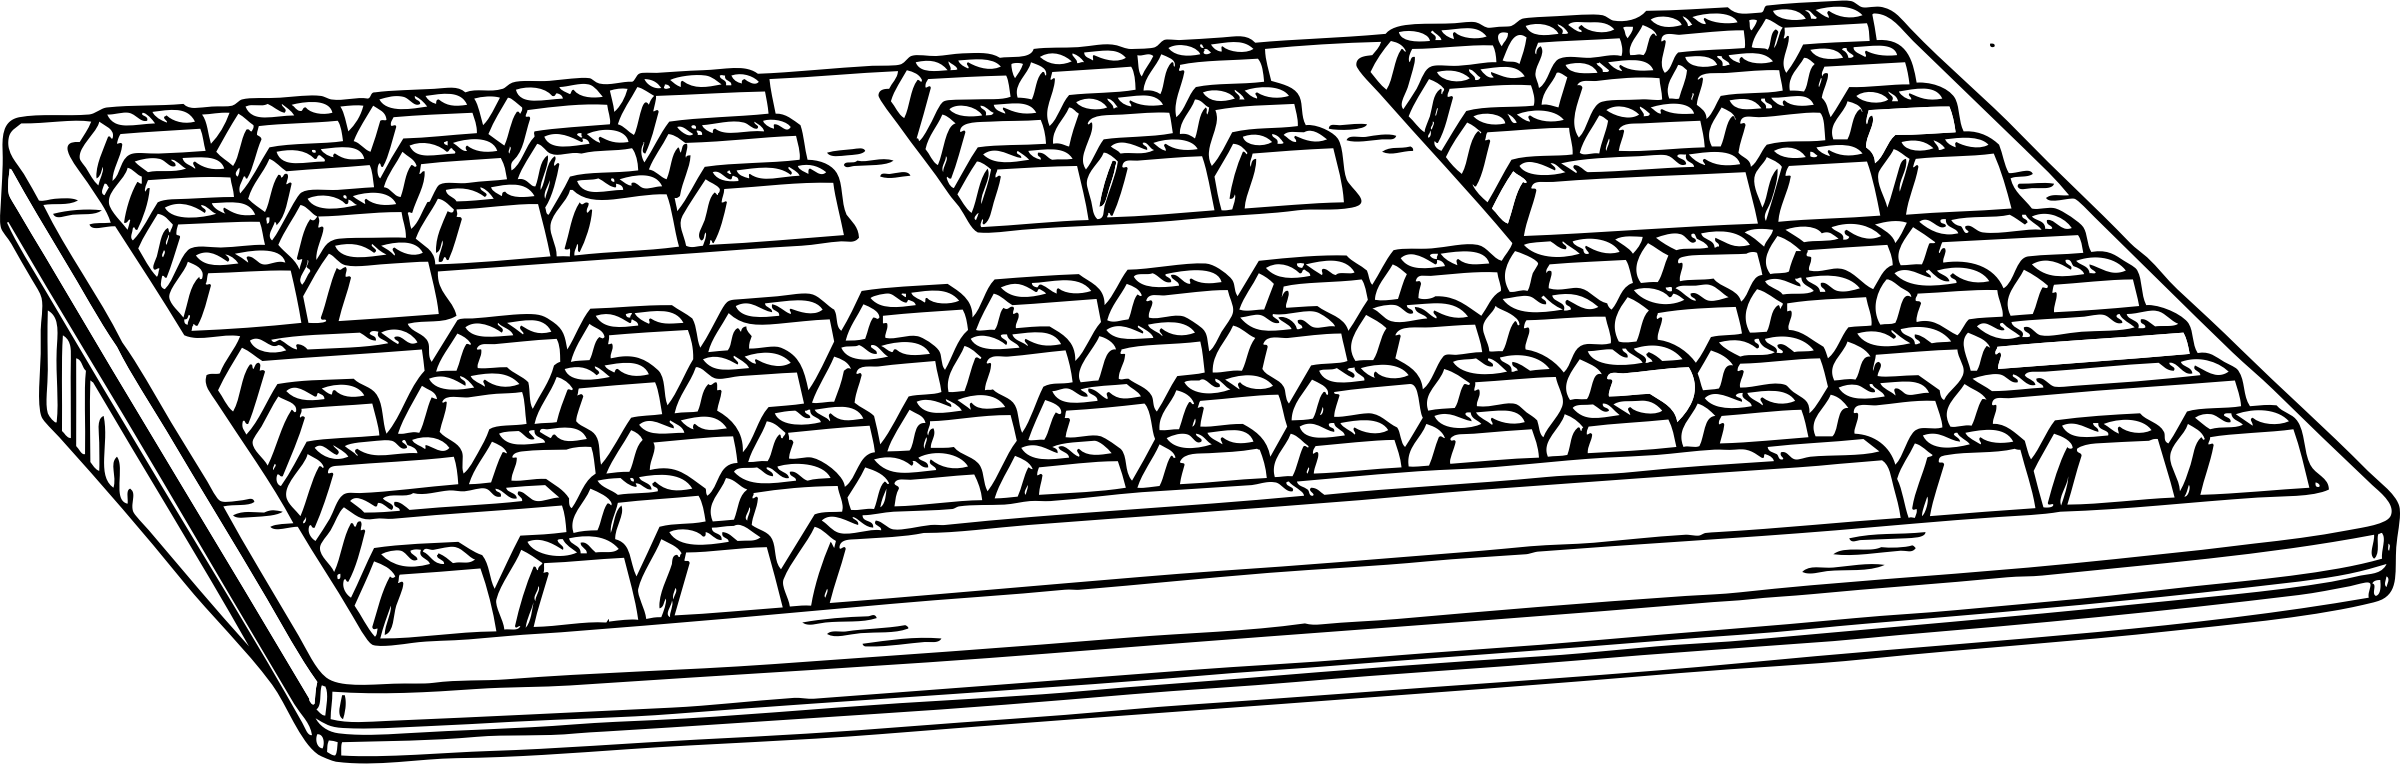 Computer Keyboard Clipart Black And White.